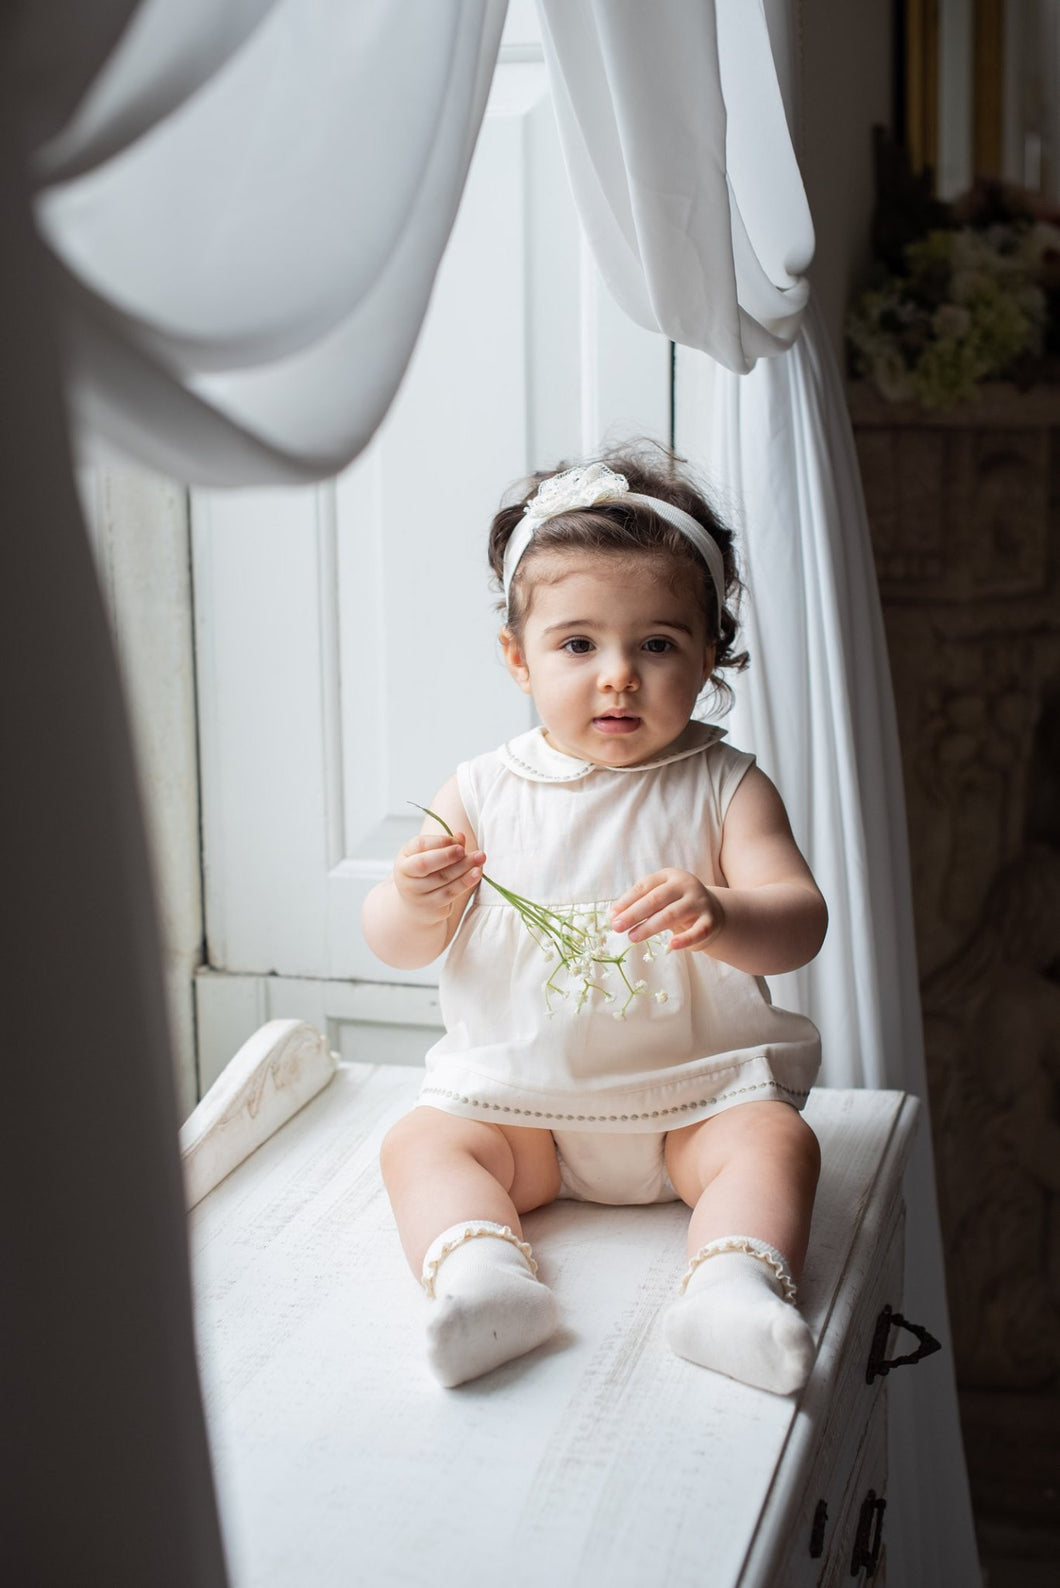 Pagliaccetto bimba NaturaPura/ Voile and jersey rompers with embroidery details - HOPLA' PARMA Baby Collections